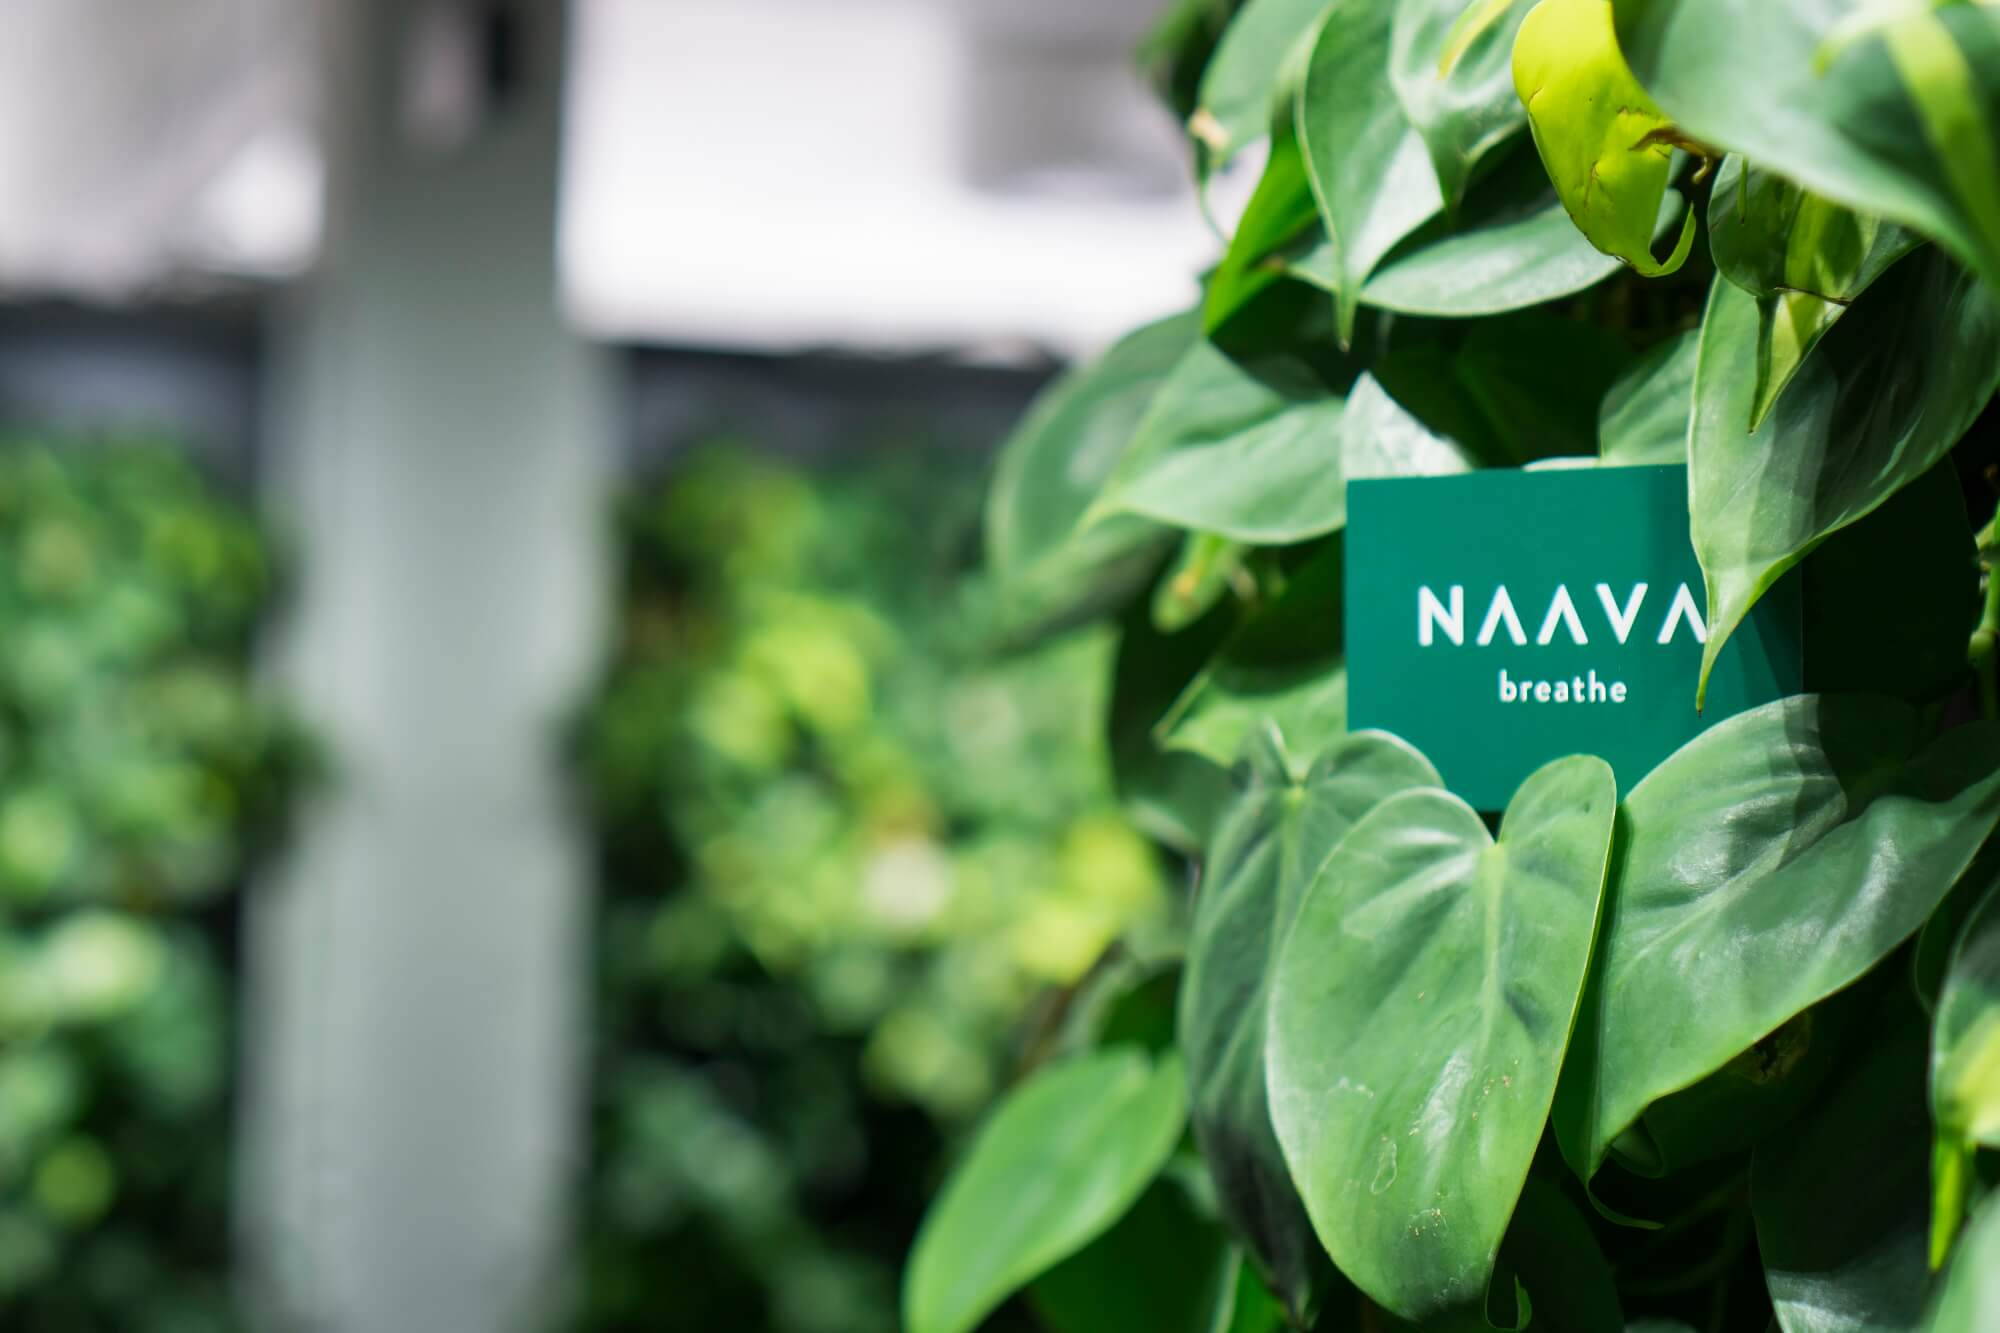 Naava-plants-greenwall.jpg